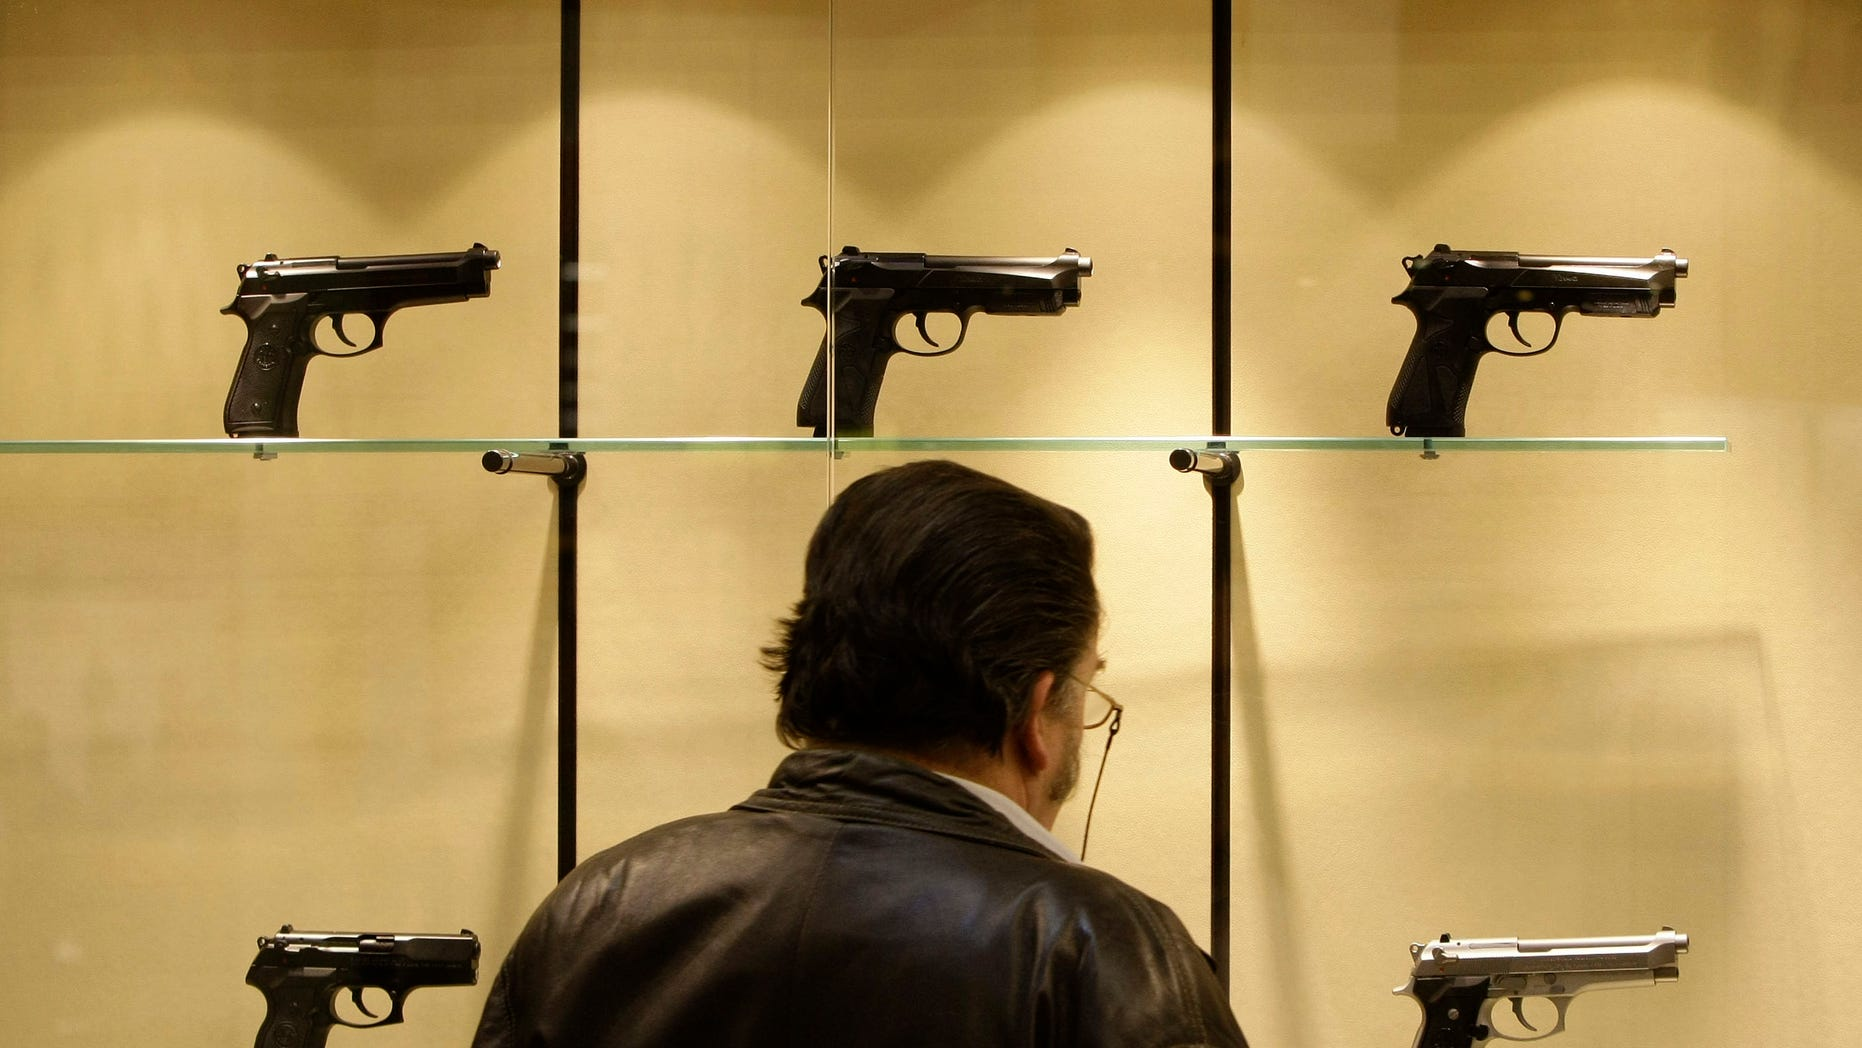 FILE: March 2009: A man looks at Beretta guns during the International Guns Exhibition and Outdoor Classics in Nuremberg, Germany.